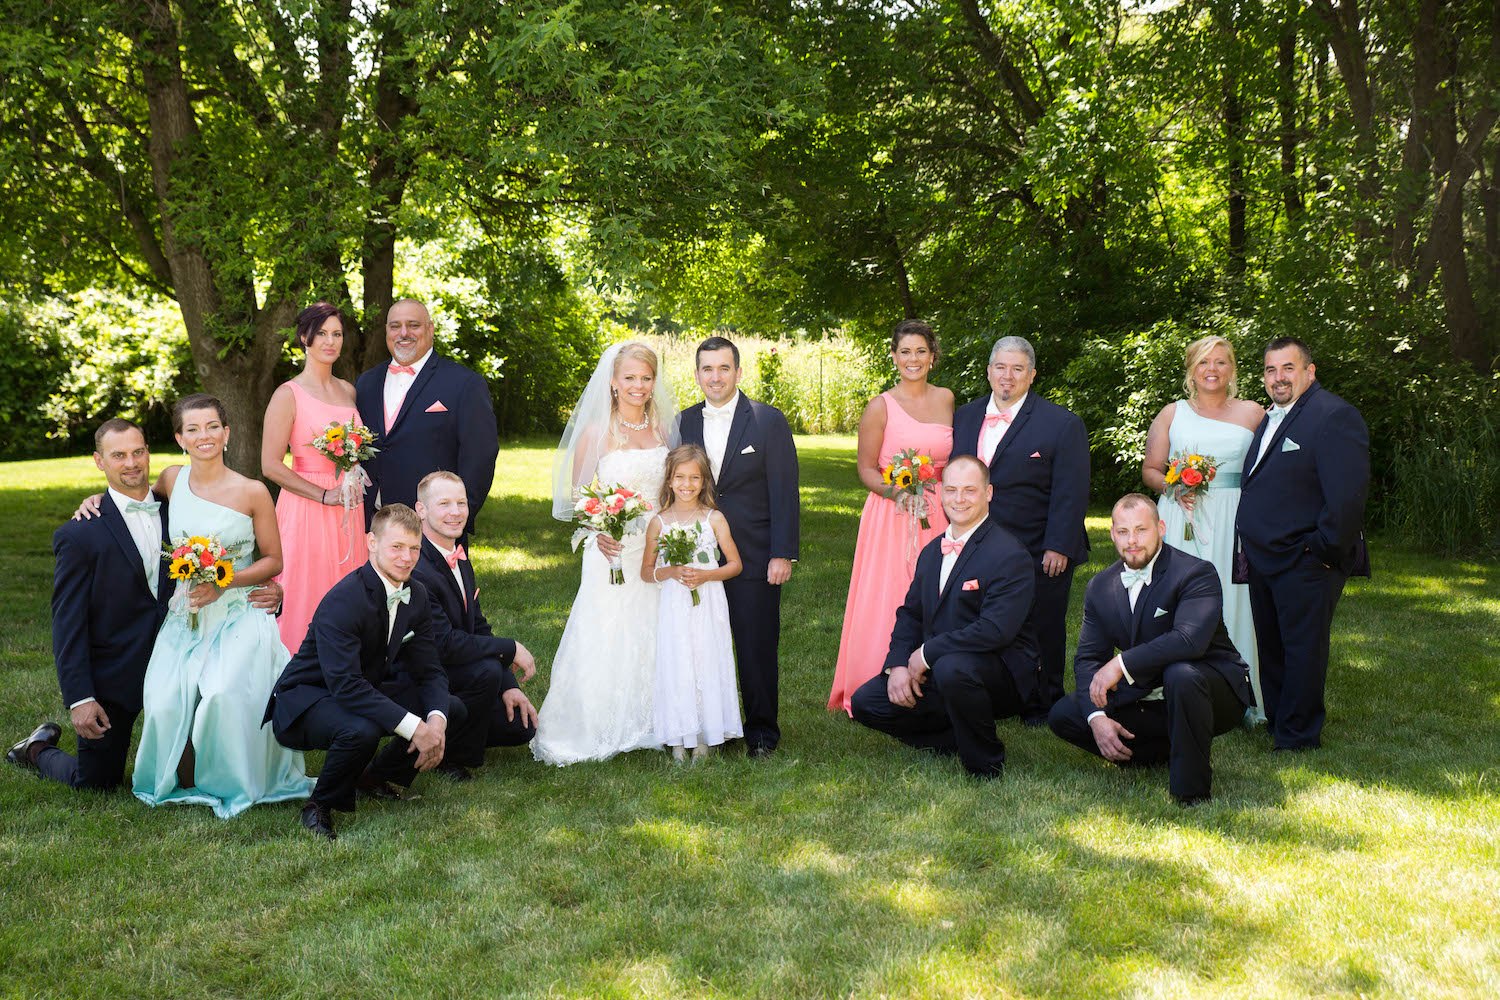 Cindyrellas Garden, outdoor lake ceremony in Minnesota, wedding party photo